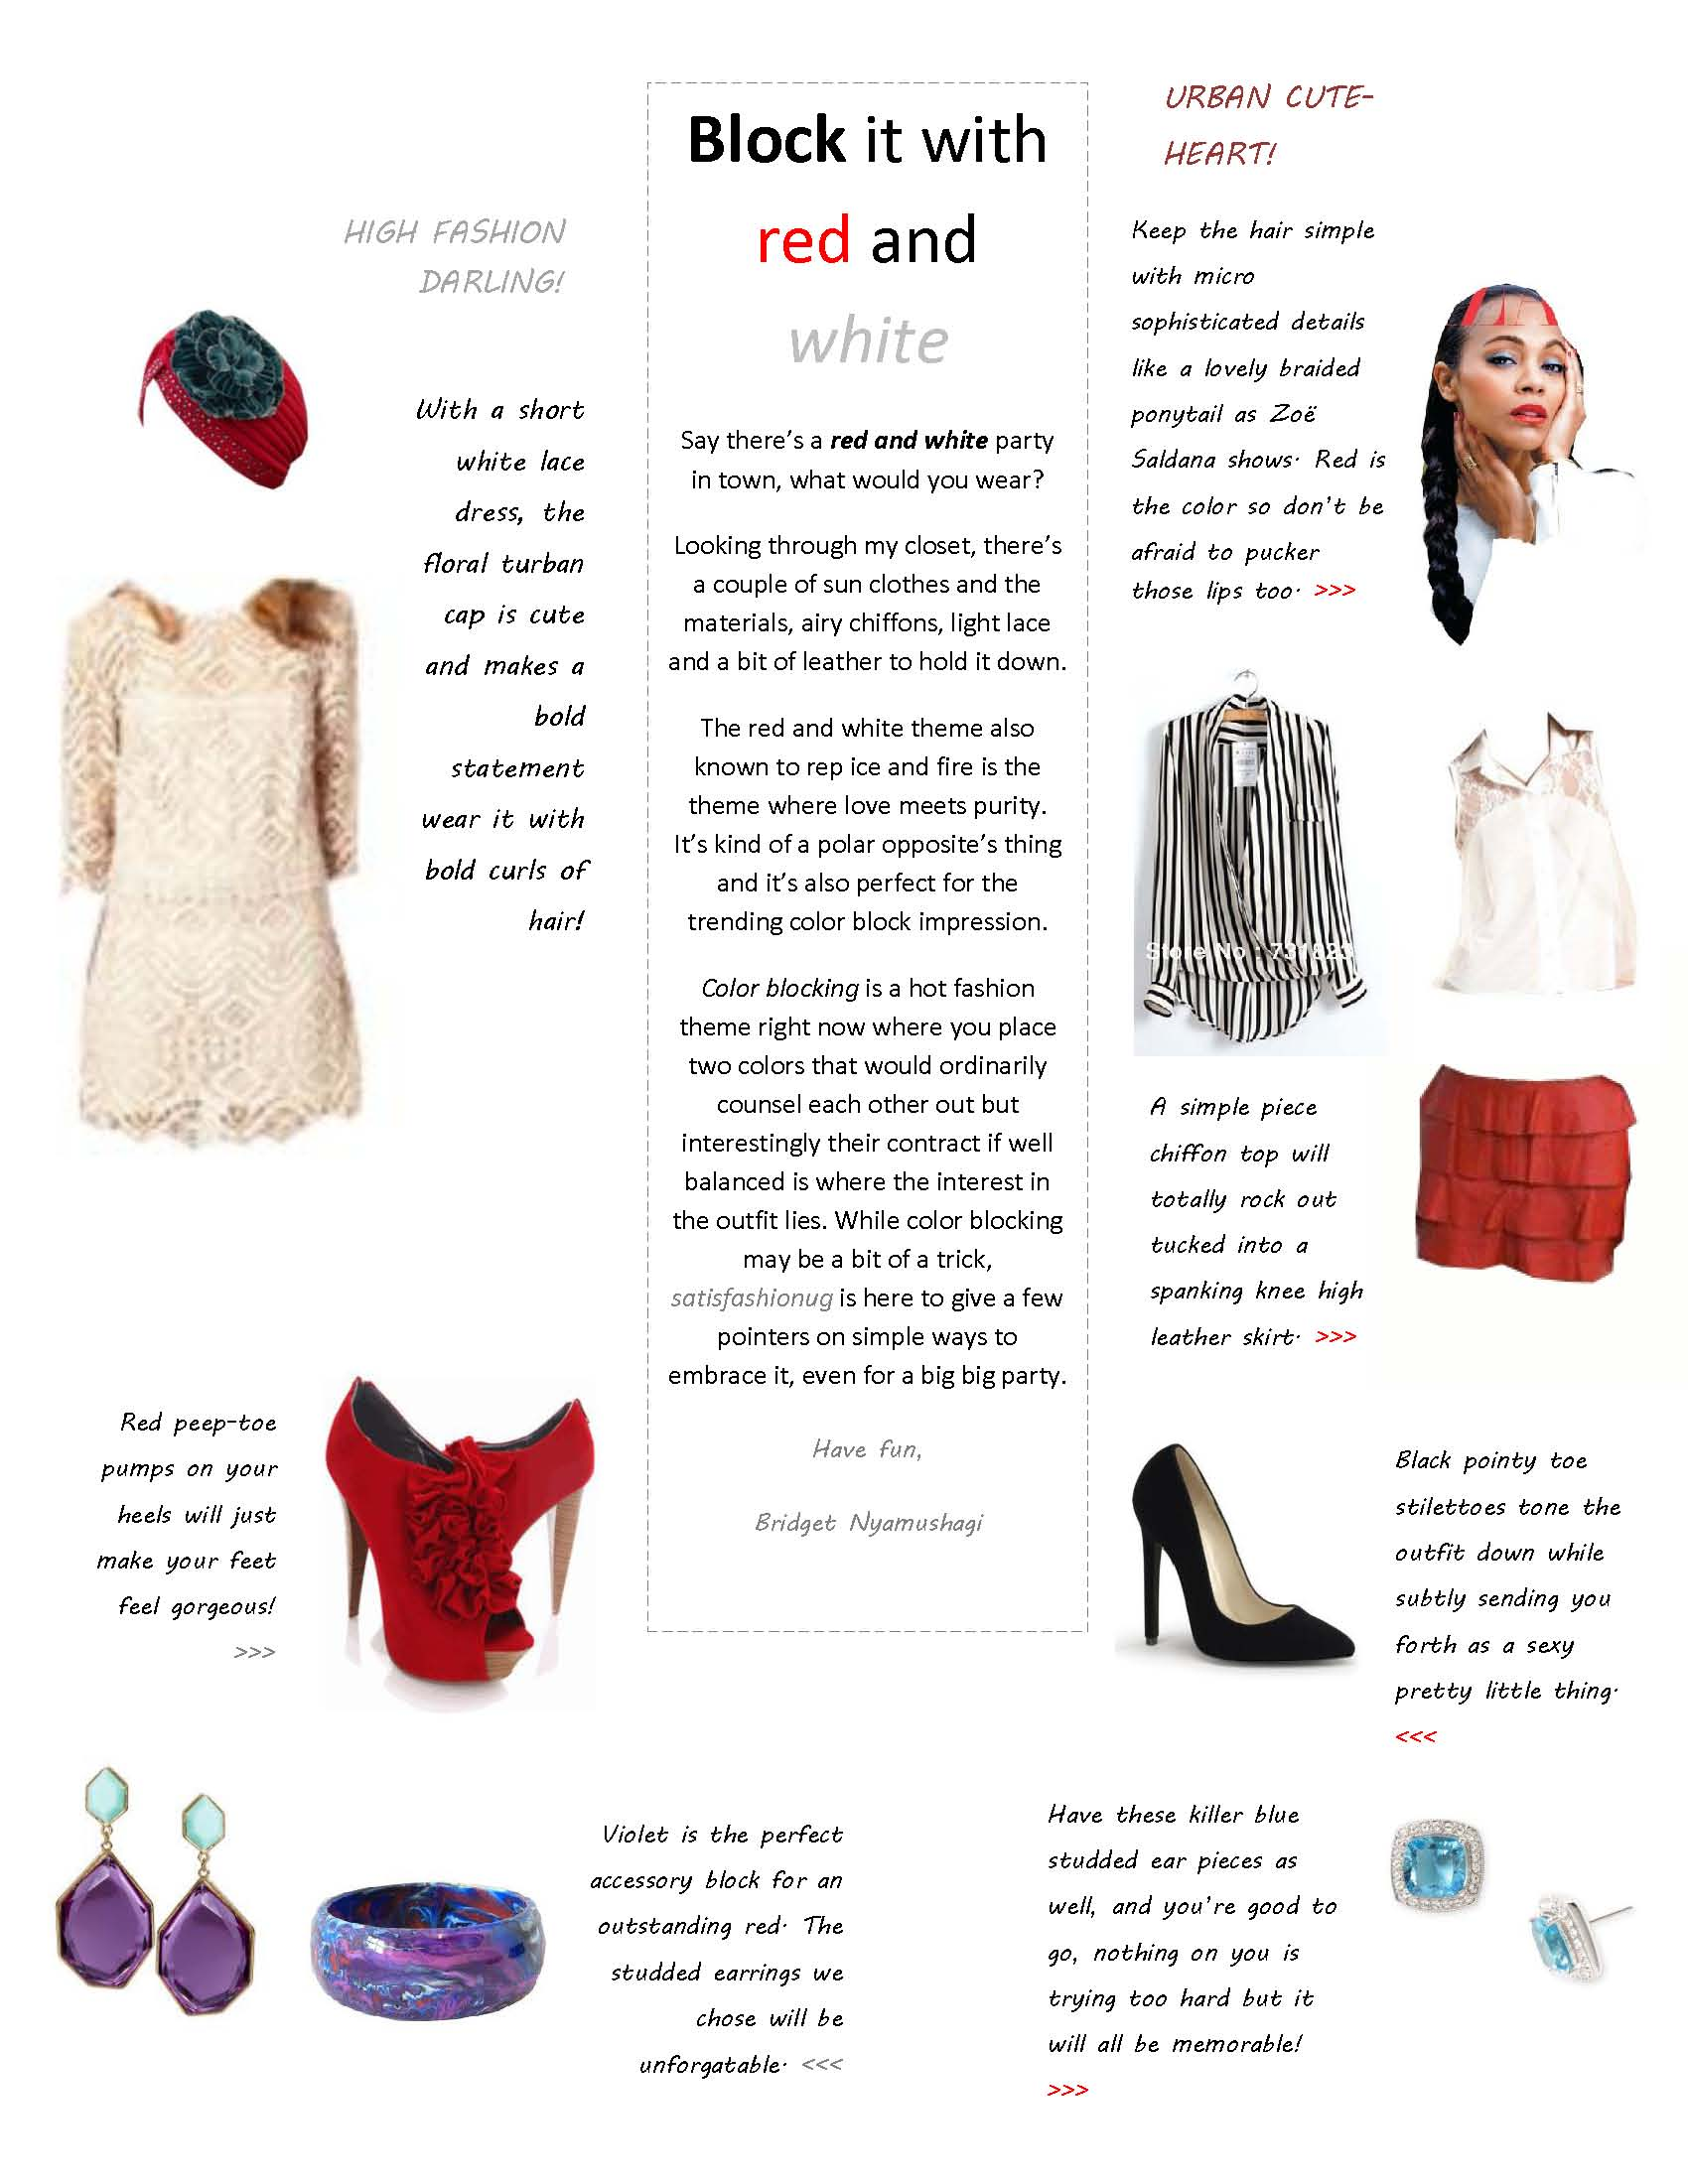 red and white party_Page_1